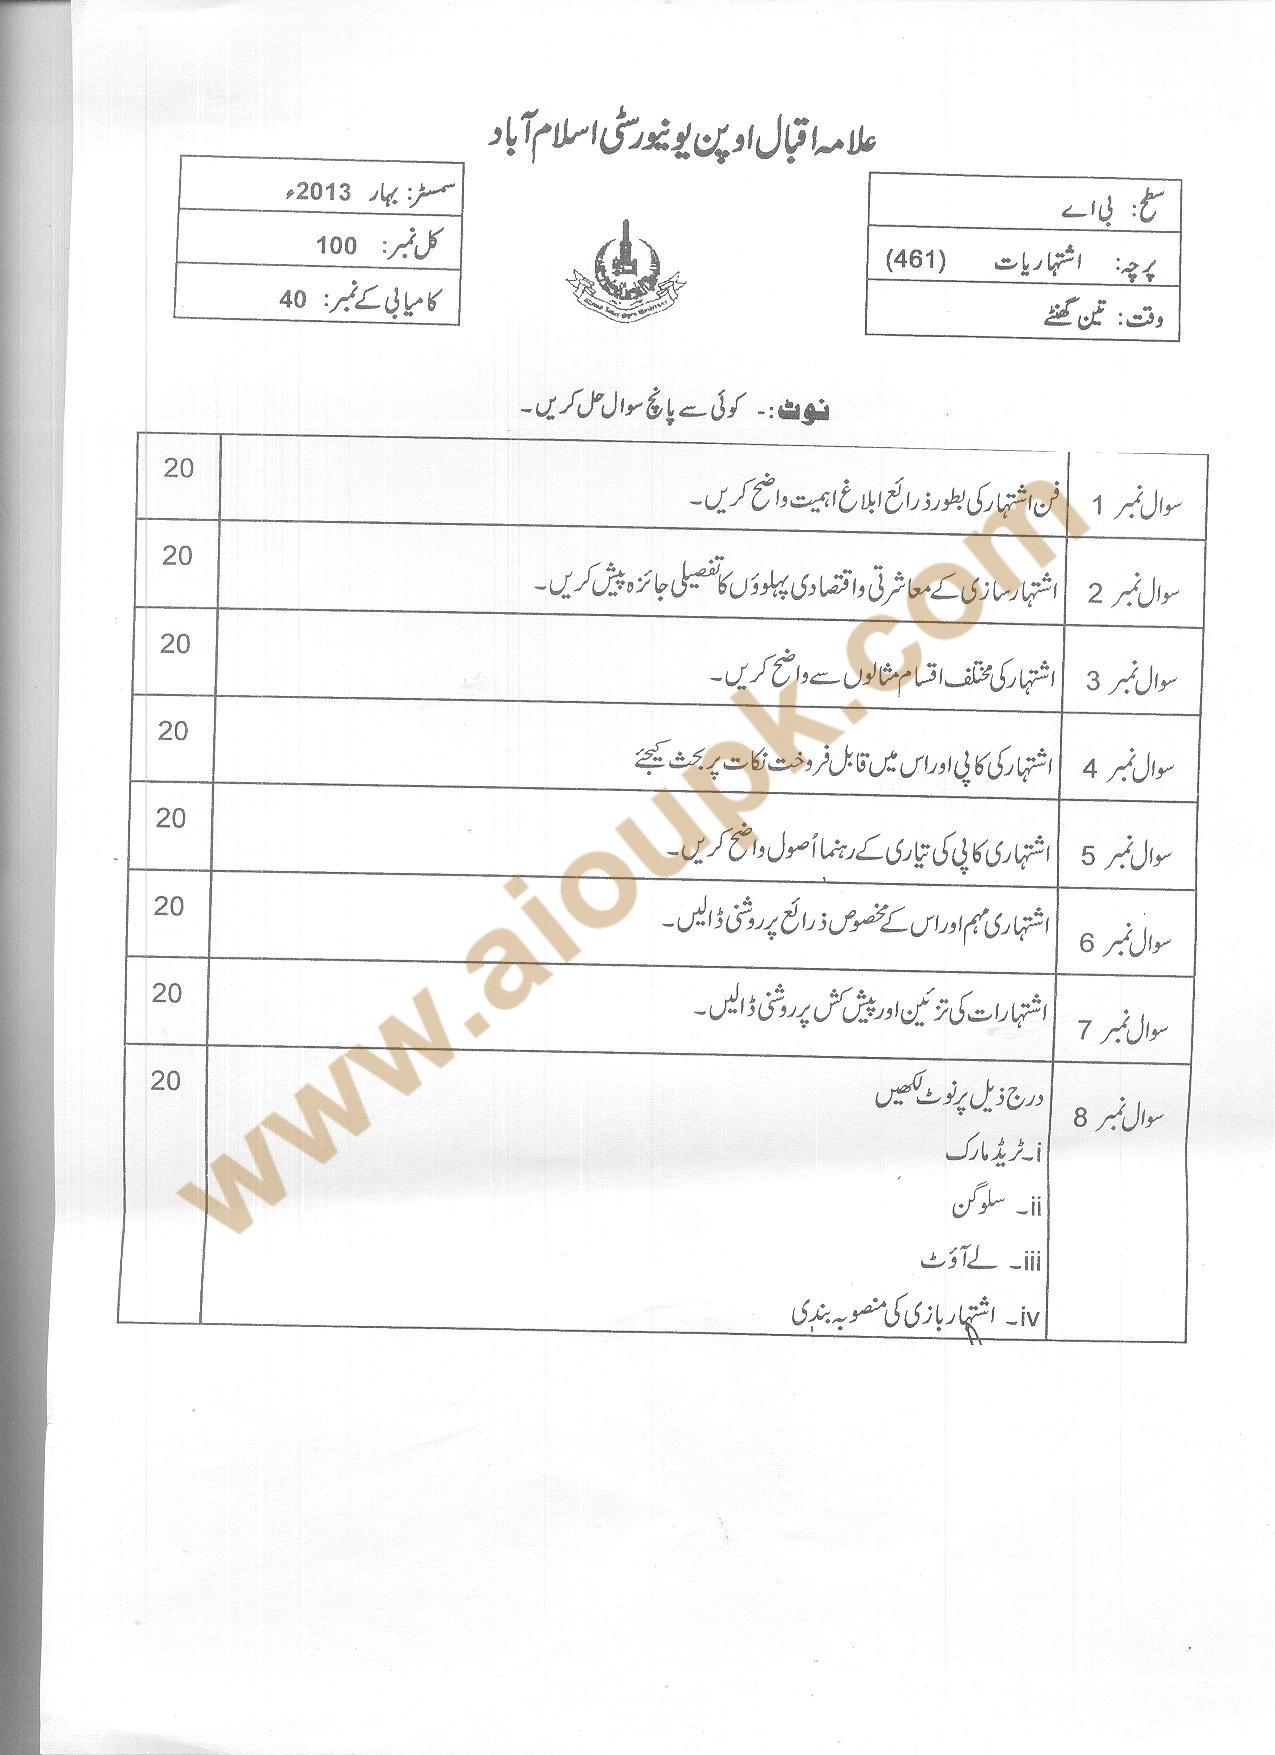 Advertising Code No 461 Ba Aiou Old Papers Spring